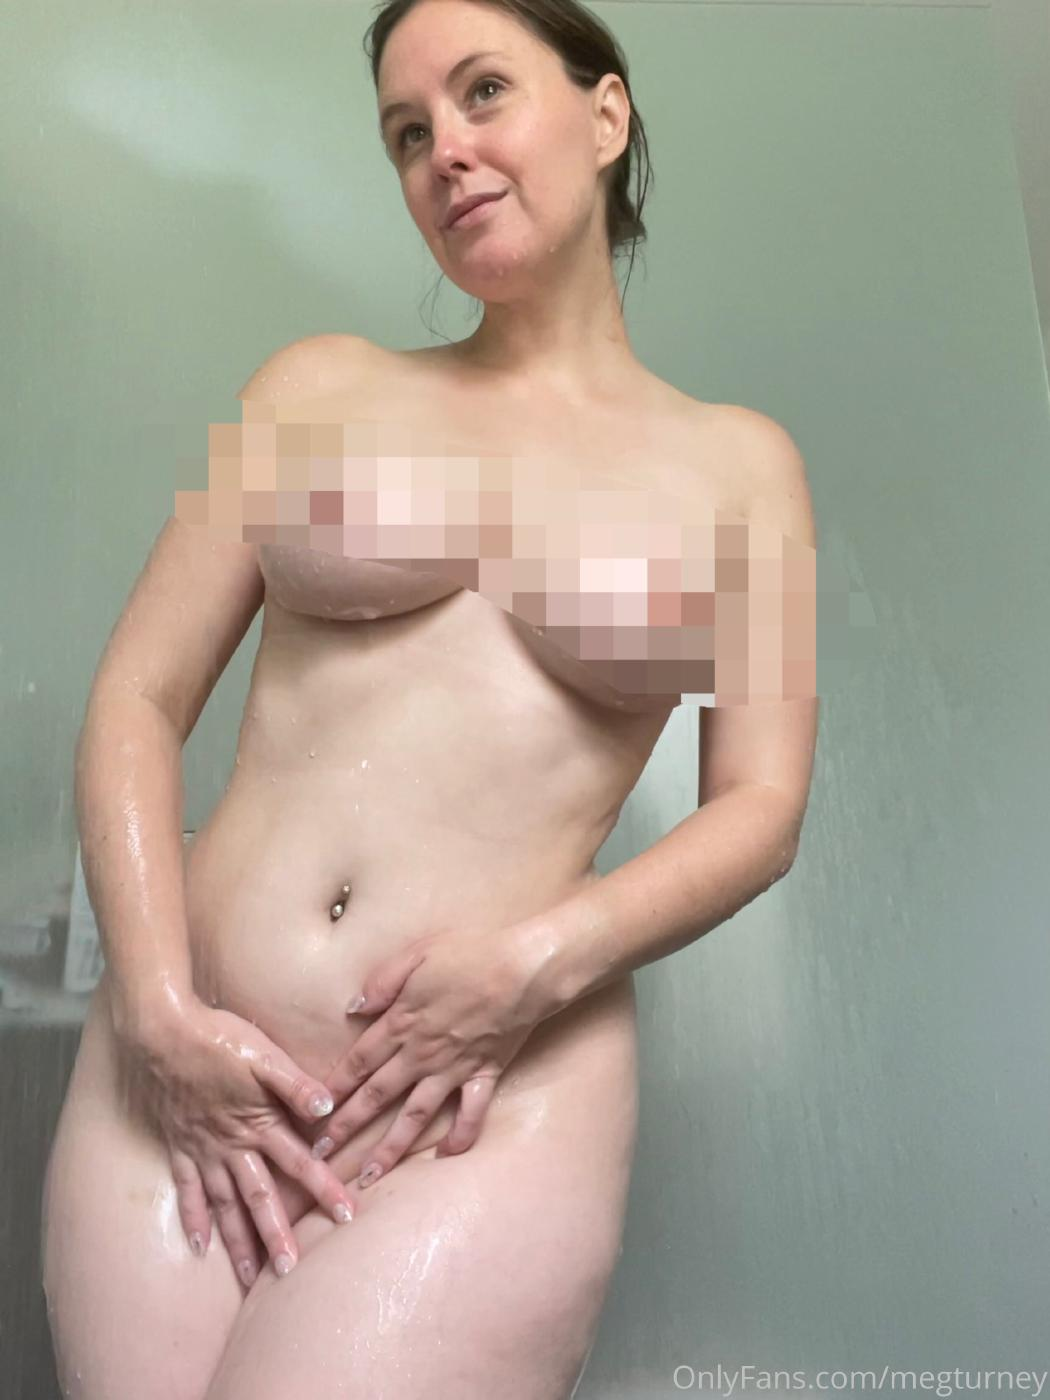 Meg Turney Extra Spicy Shower Candid Onlyfans Set Leaked 0004